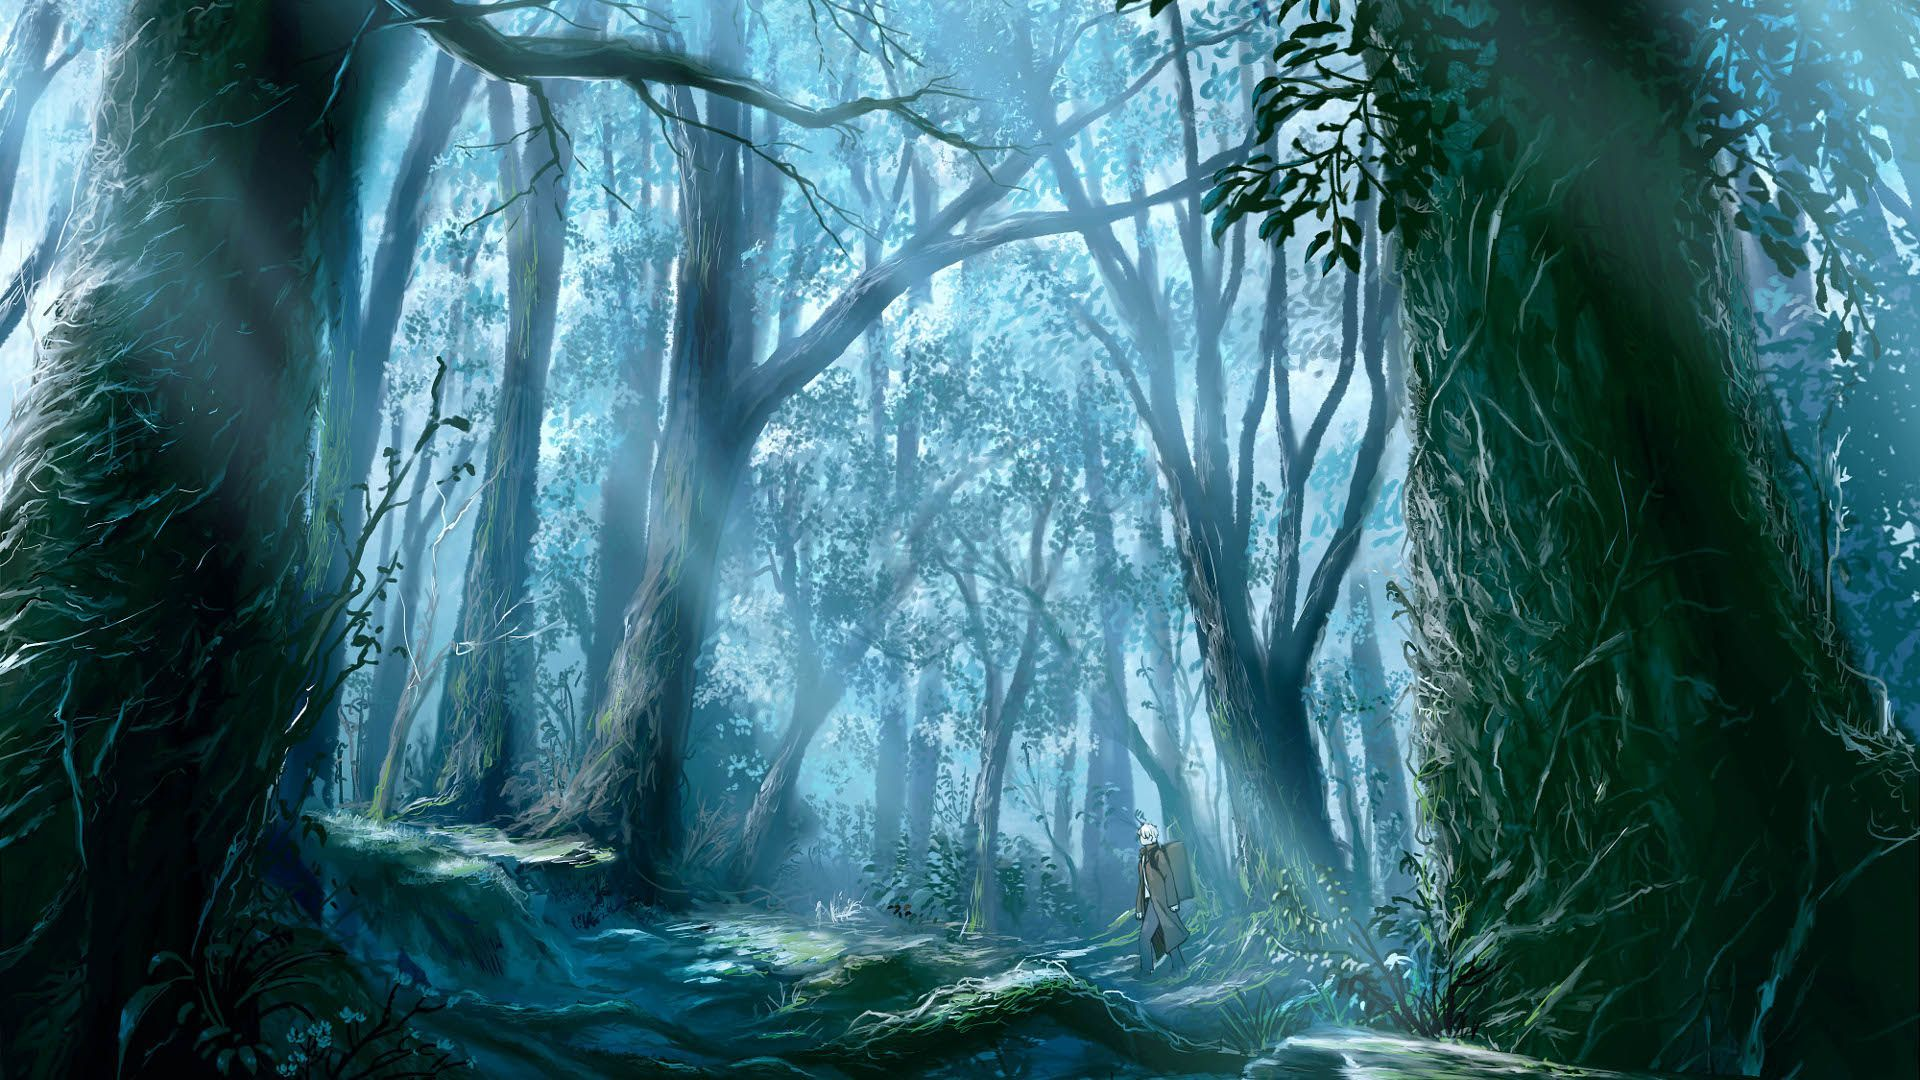 Anime dark forest wallpapers top free anime dark forest - Dark anime background ...